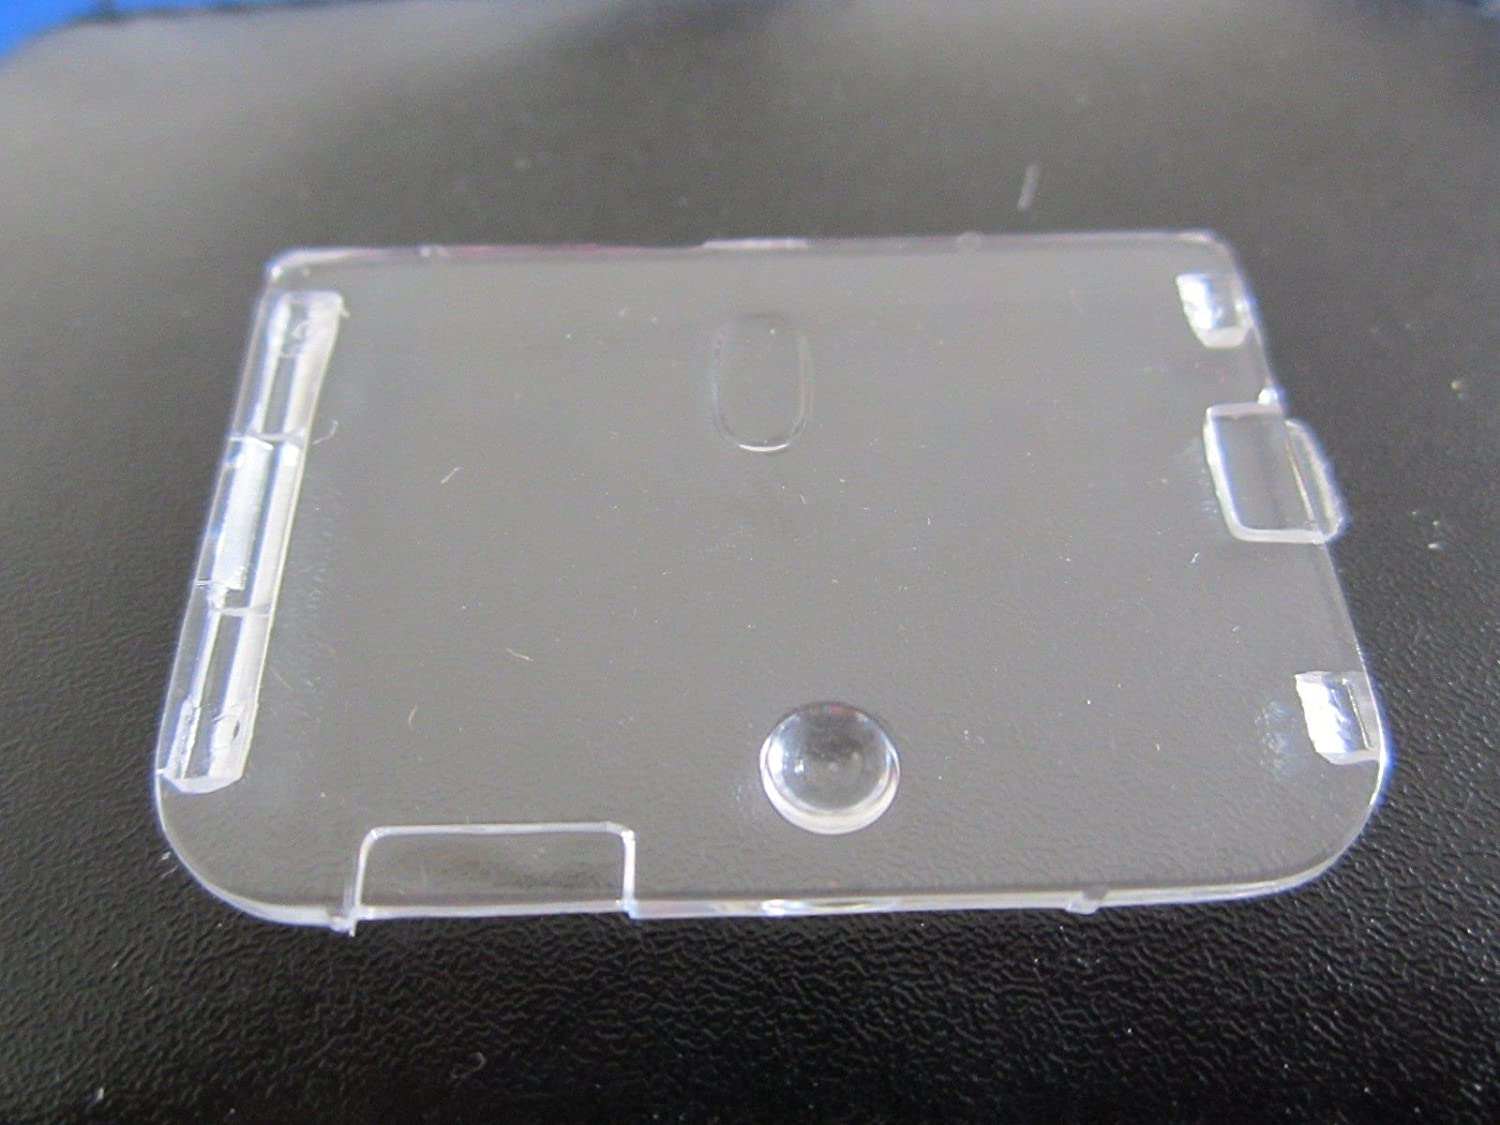 NewPowerGear Bobbin Cover Plate Replacement For Sewing Machines SINGER 7468 7430 7422 7256 7436 7258 7426 CE200 7424 6518 CE100